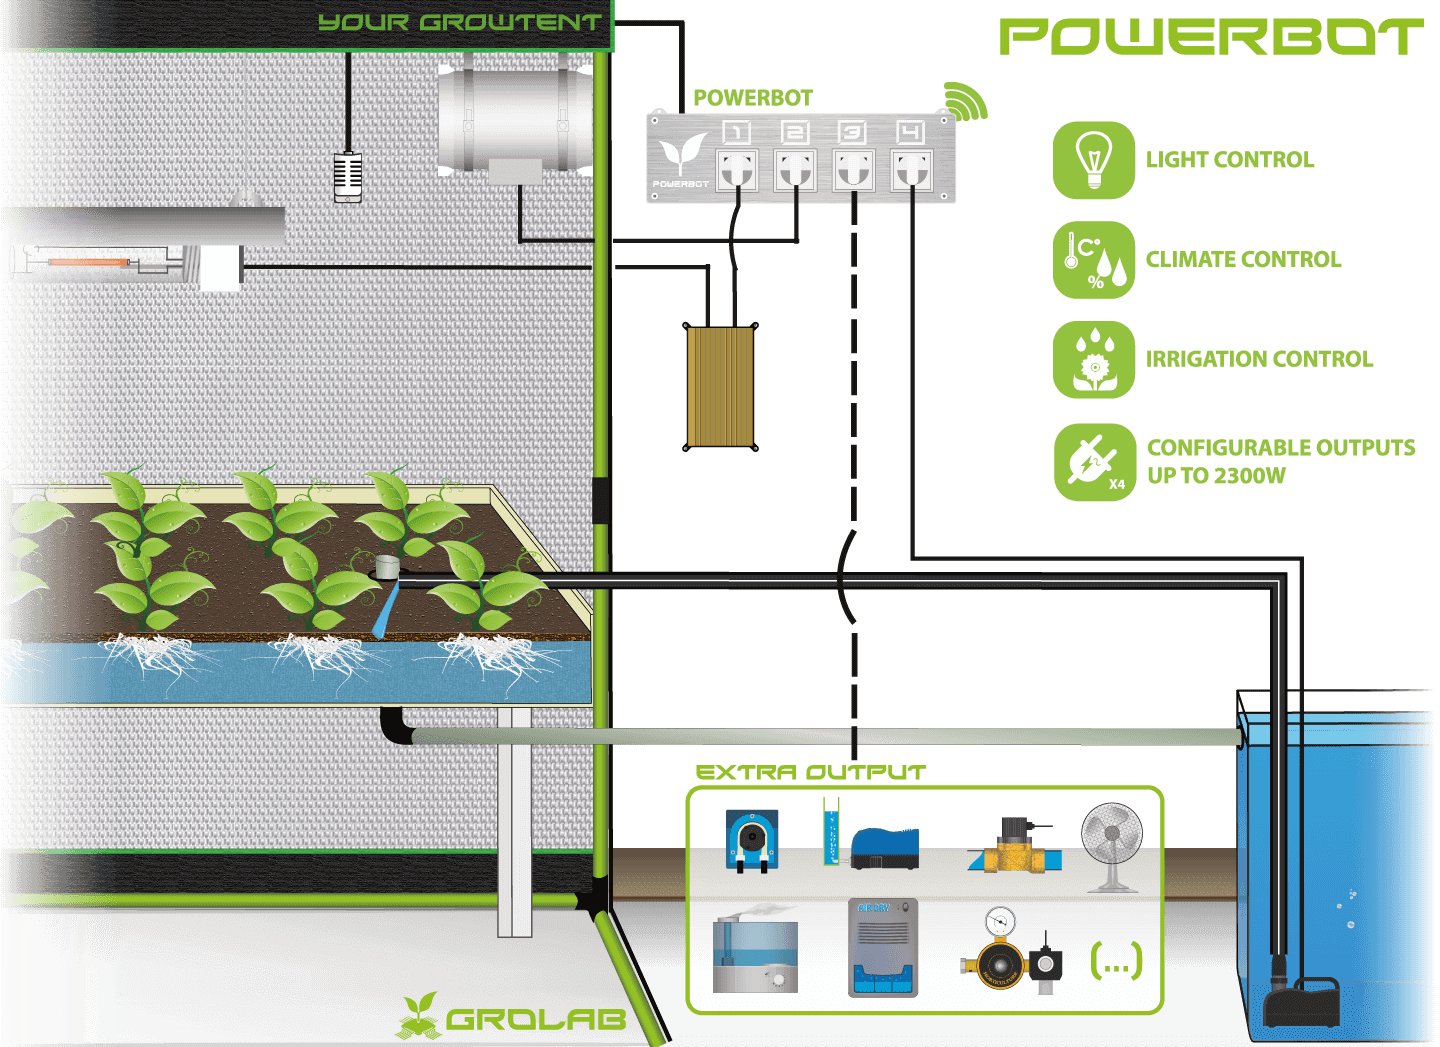 PowerBot configuration schematic example, the complete all in one GroLab™ system's power module, controlling light, irrigation and climate